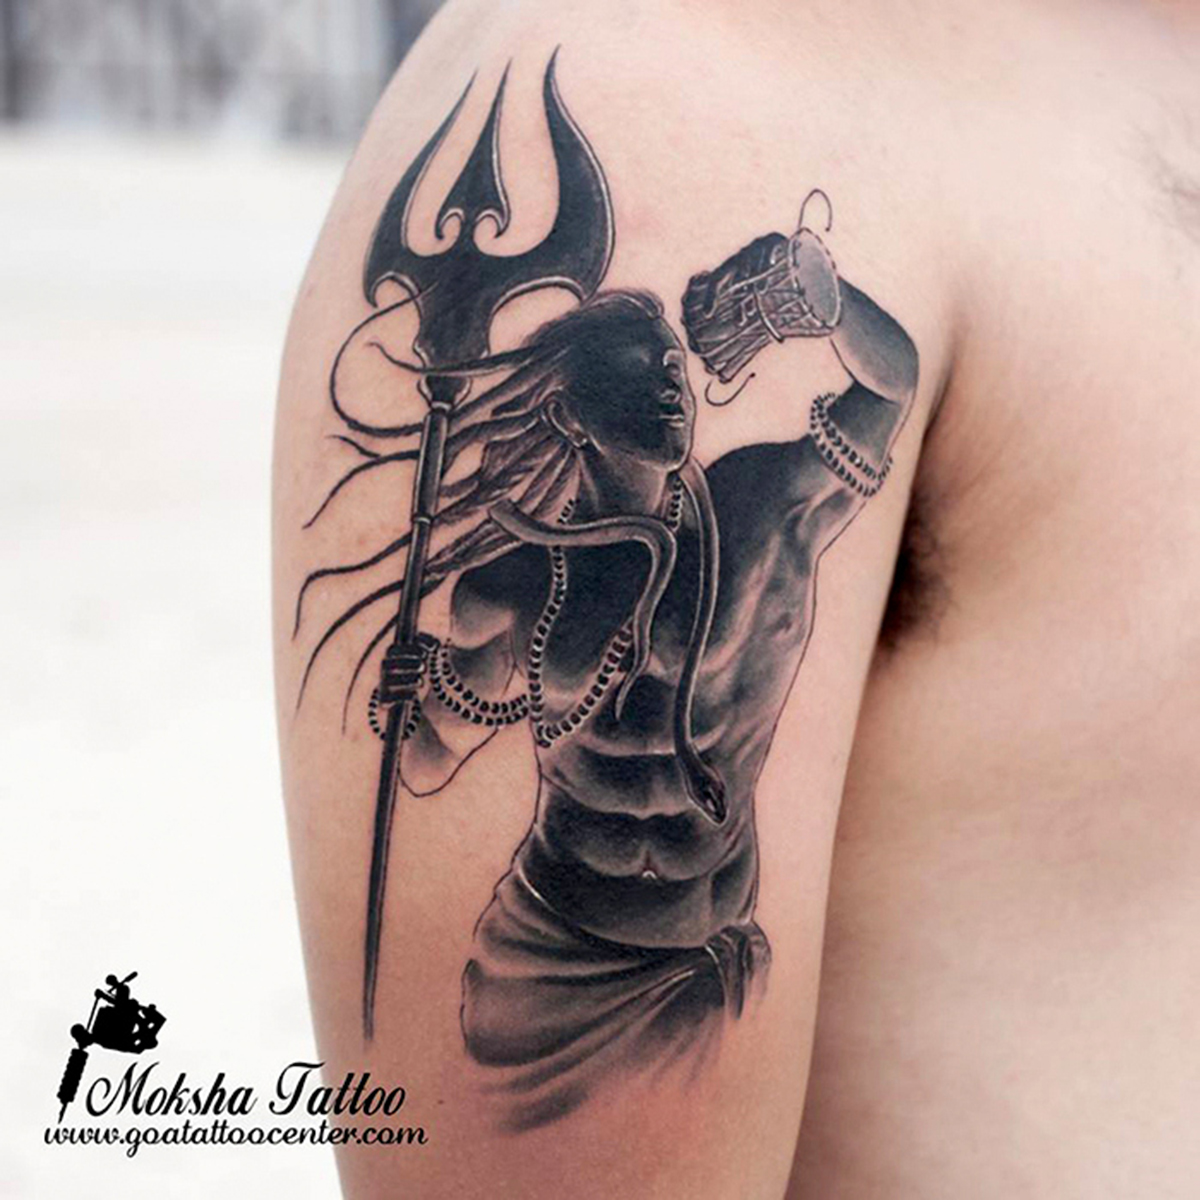 shiva tattoo done by mukesh waghela at moksha tattoo studio goa india goa tattoo center. Black Bedroom Furniture Sets. Home Design Ideas